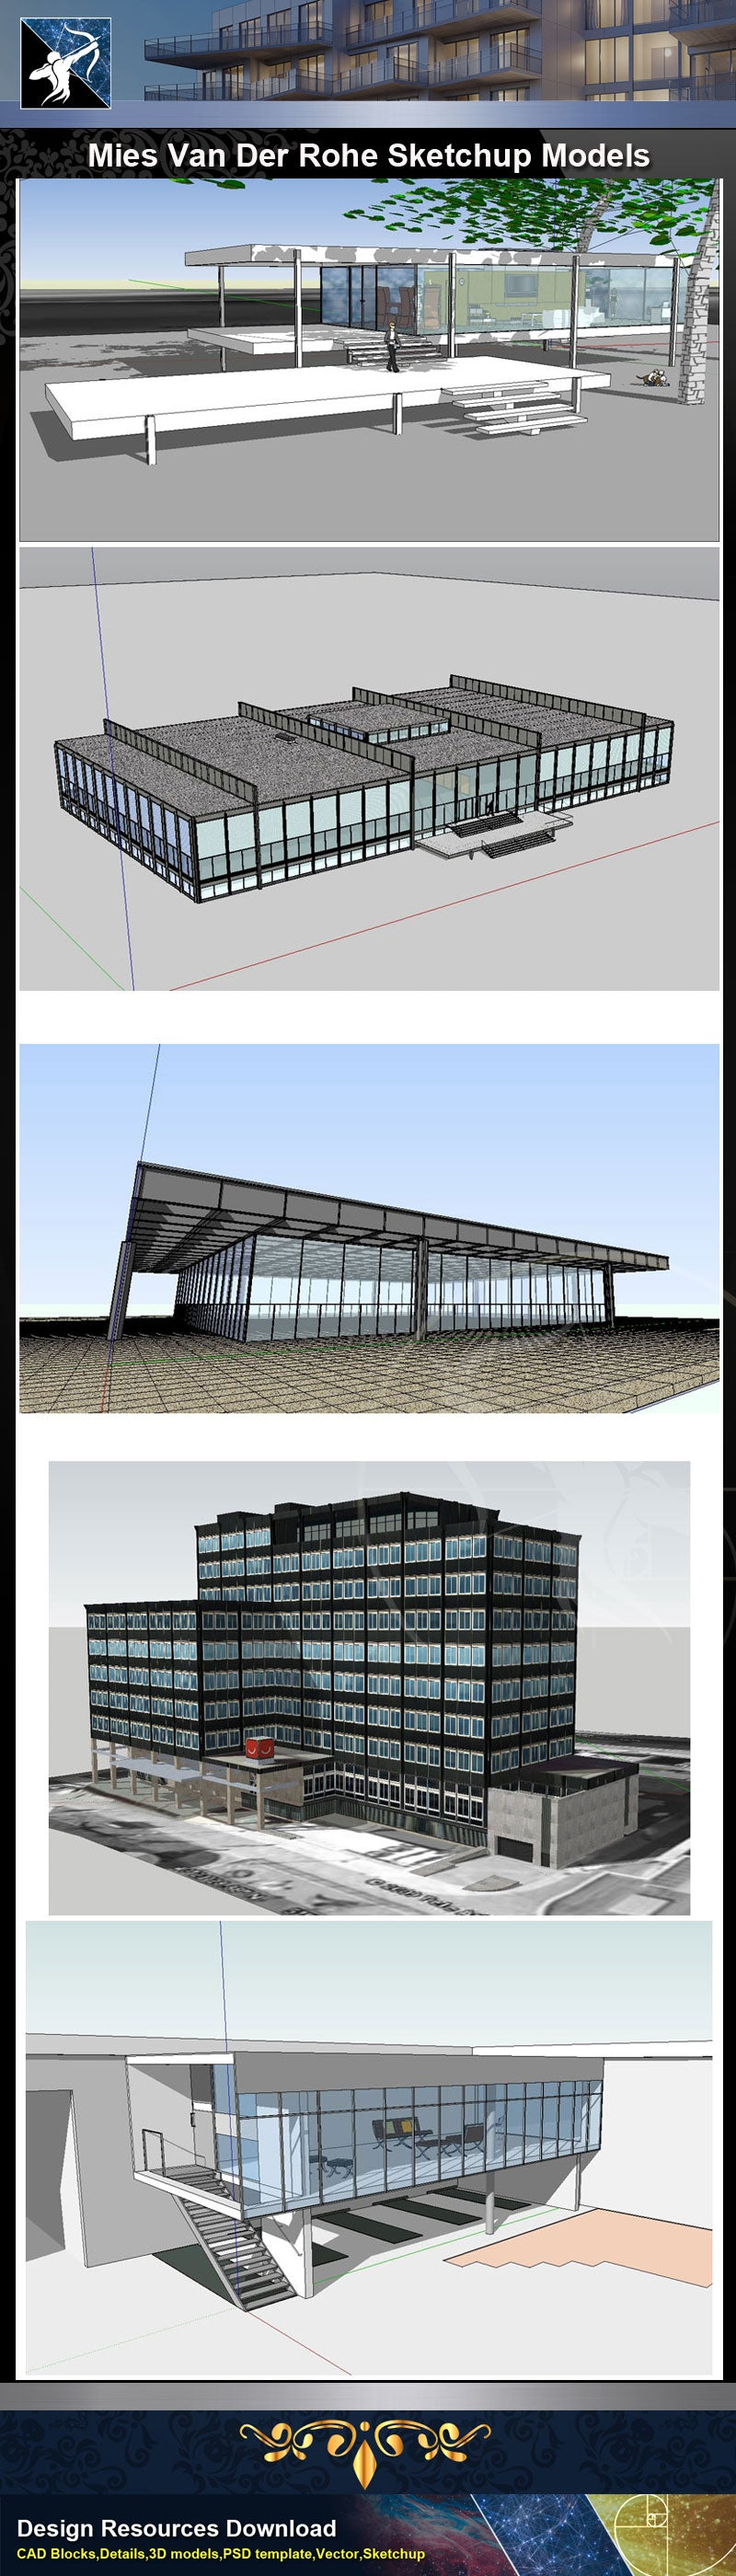 ★★Total 107 Pritzker Architecture Sketchup 3D Models★ (Best Recommanded!!)